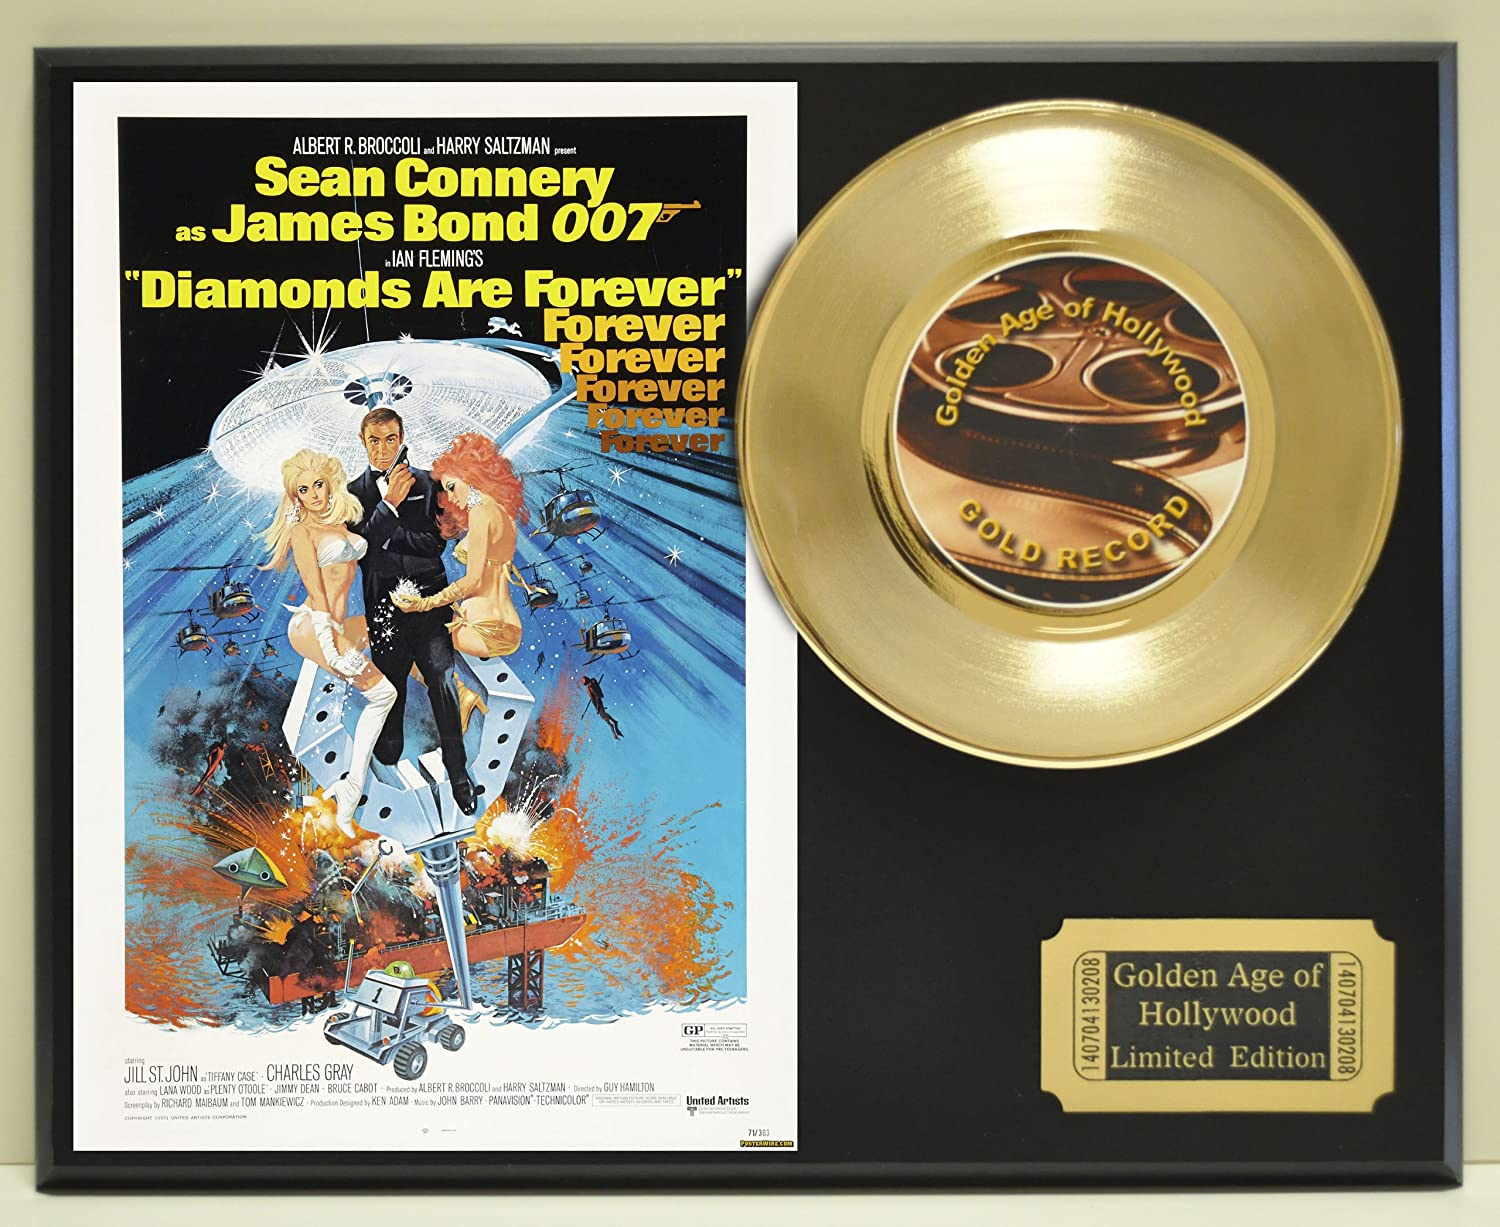 Sean Connery as James Bond in 'Diamonds are Forever', Limited Edition Gold 45 Record Display. Only 500 made. Limited quanities. FREE US SHIPPING by Classic Rock Collectibles